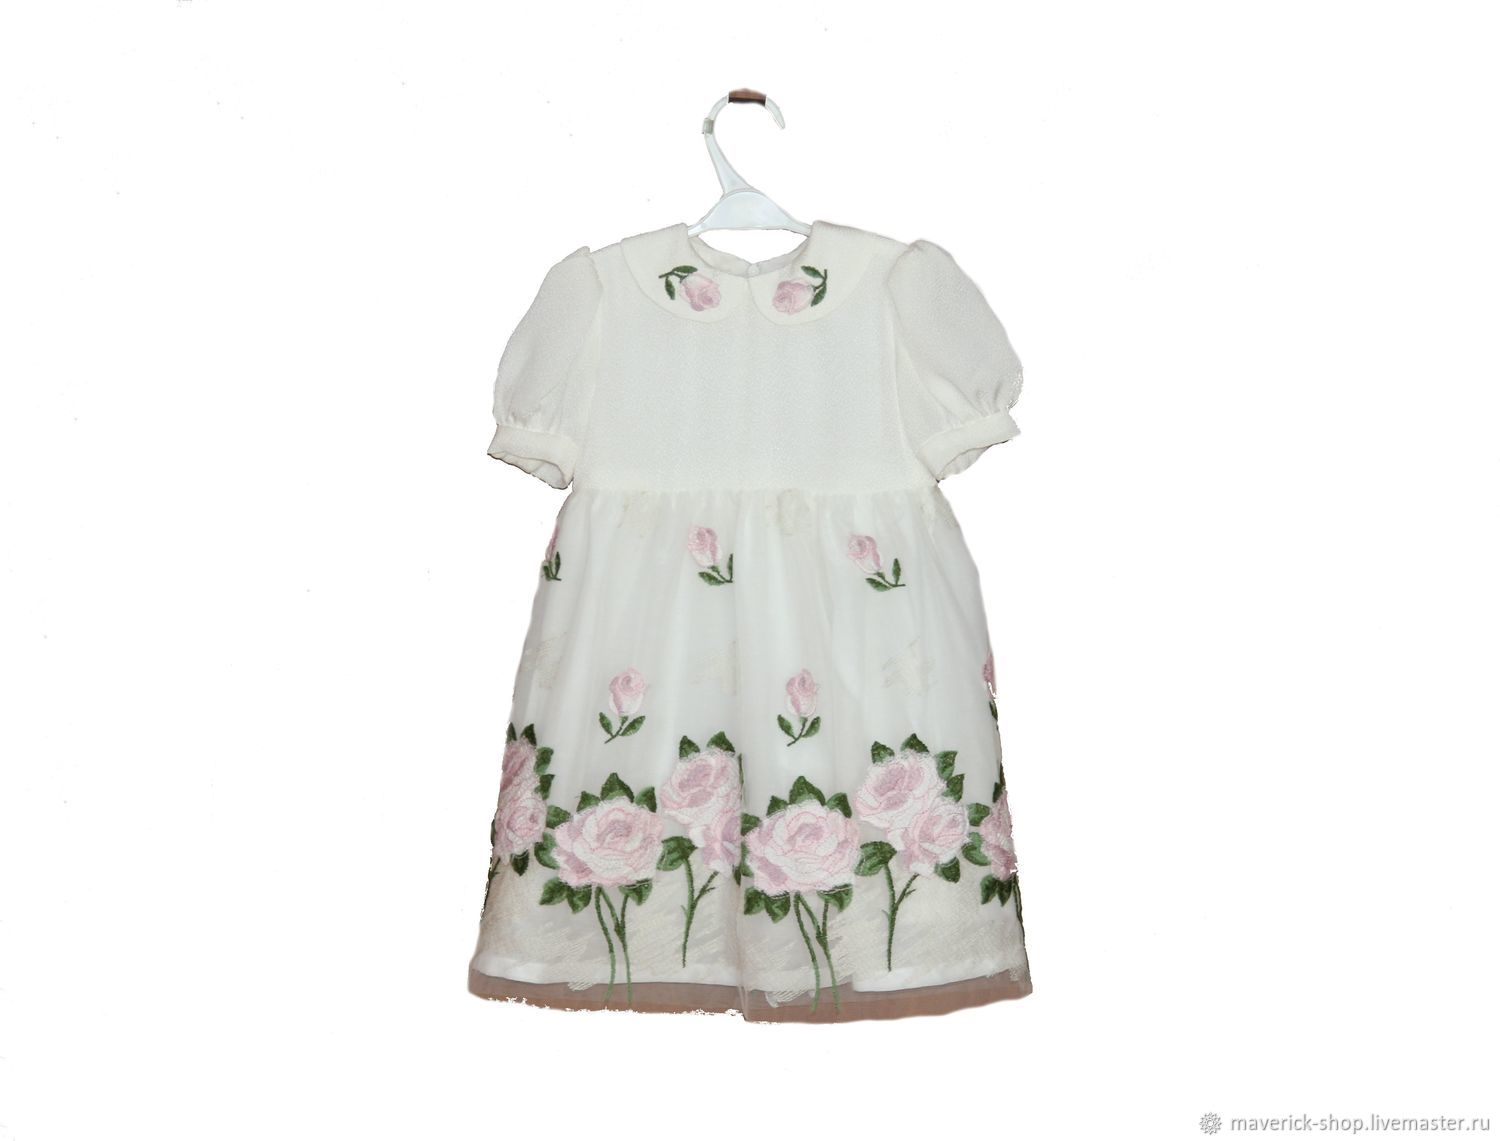 White dressy girl's dress with embroidered roses in shabby chic style, Dresses, Moscow,  Фото №1